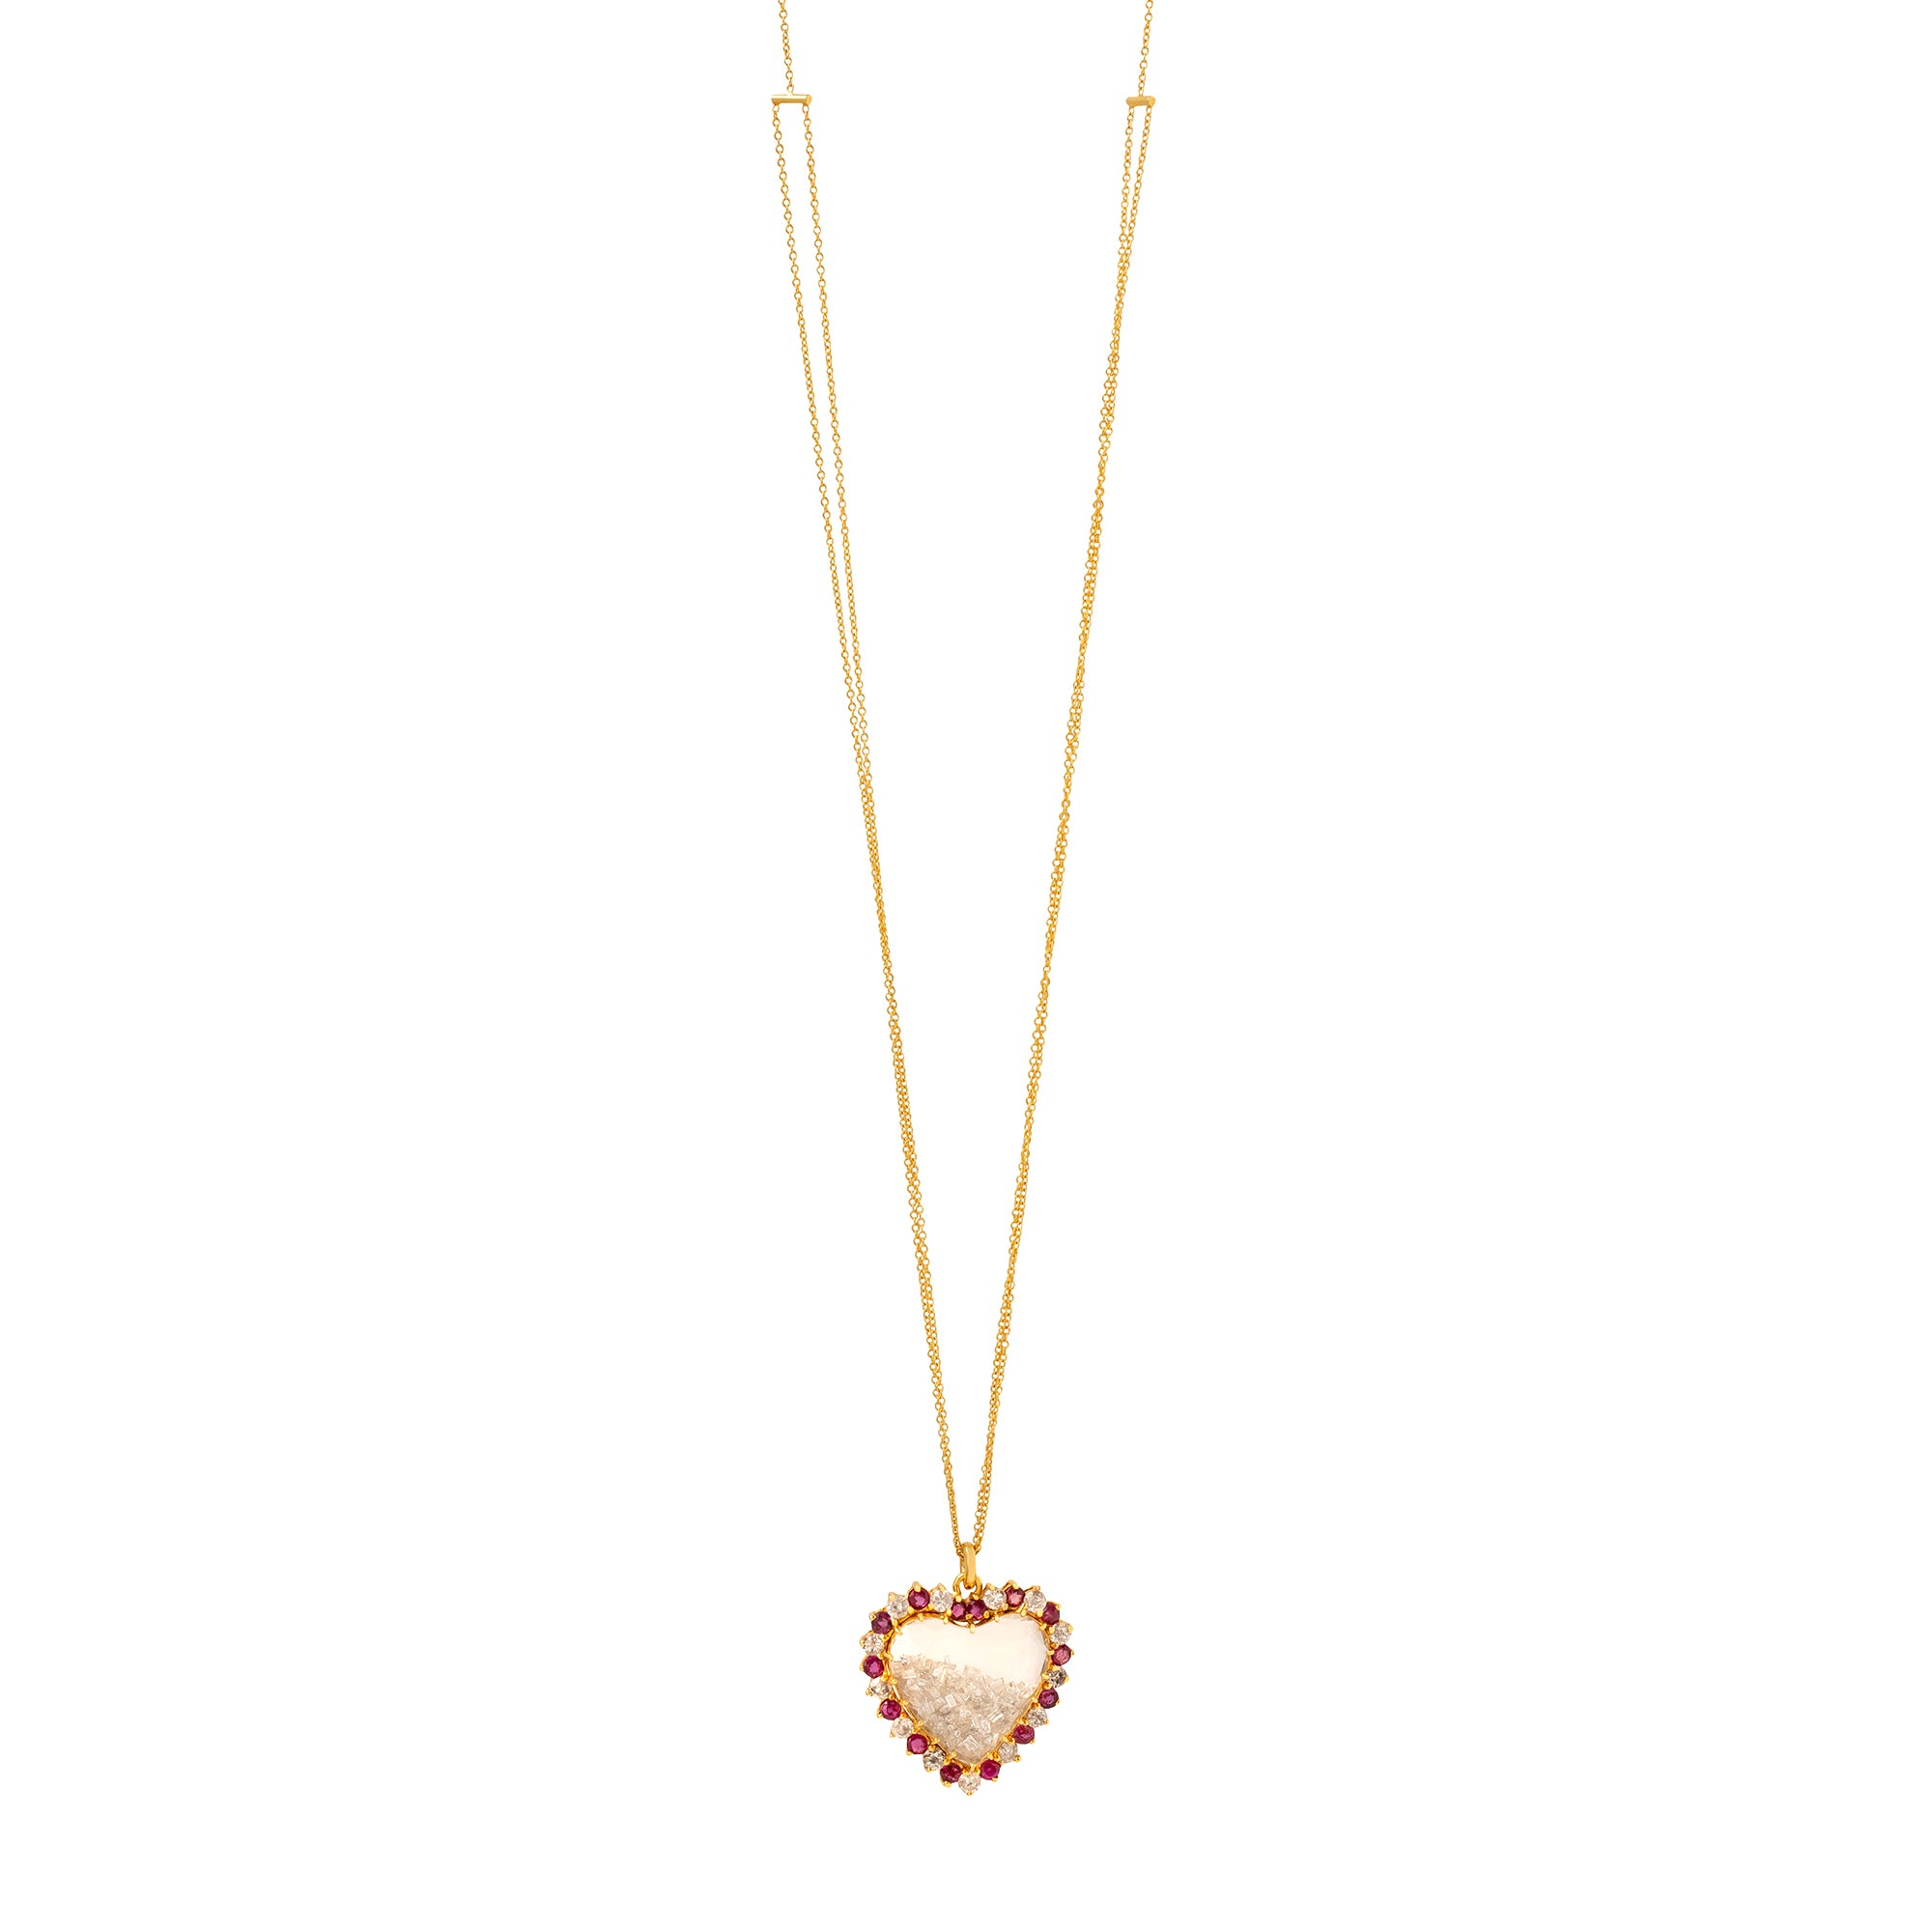 Renee Lewis Heart Shake Necklace - Ruby & Diamond - Necklaces - Broken English Jewelry